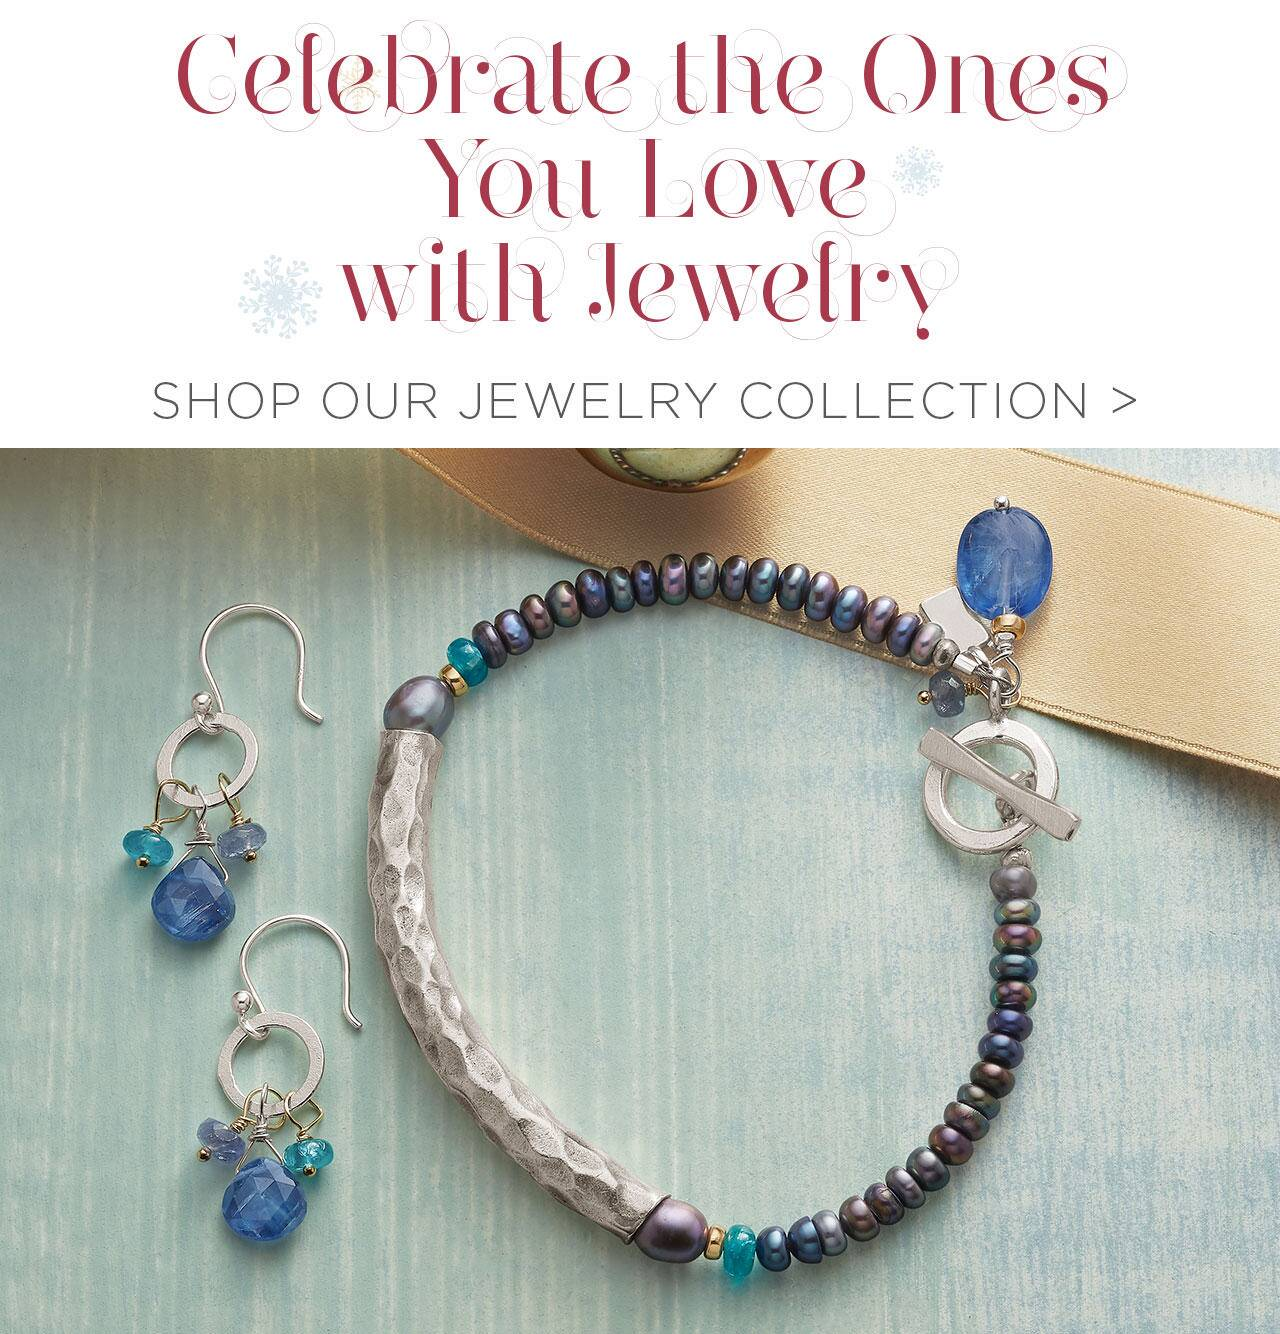 Shop Our Jewelry Collection